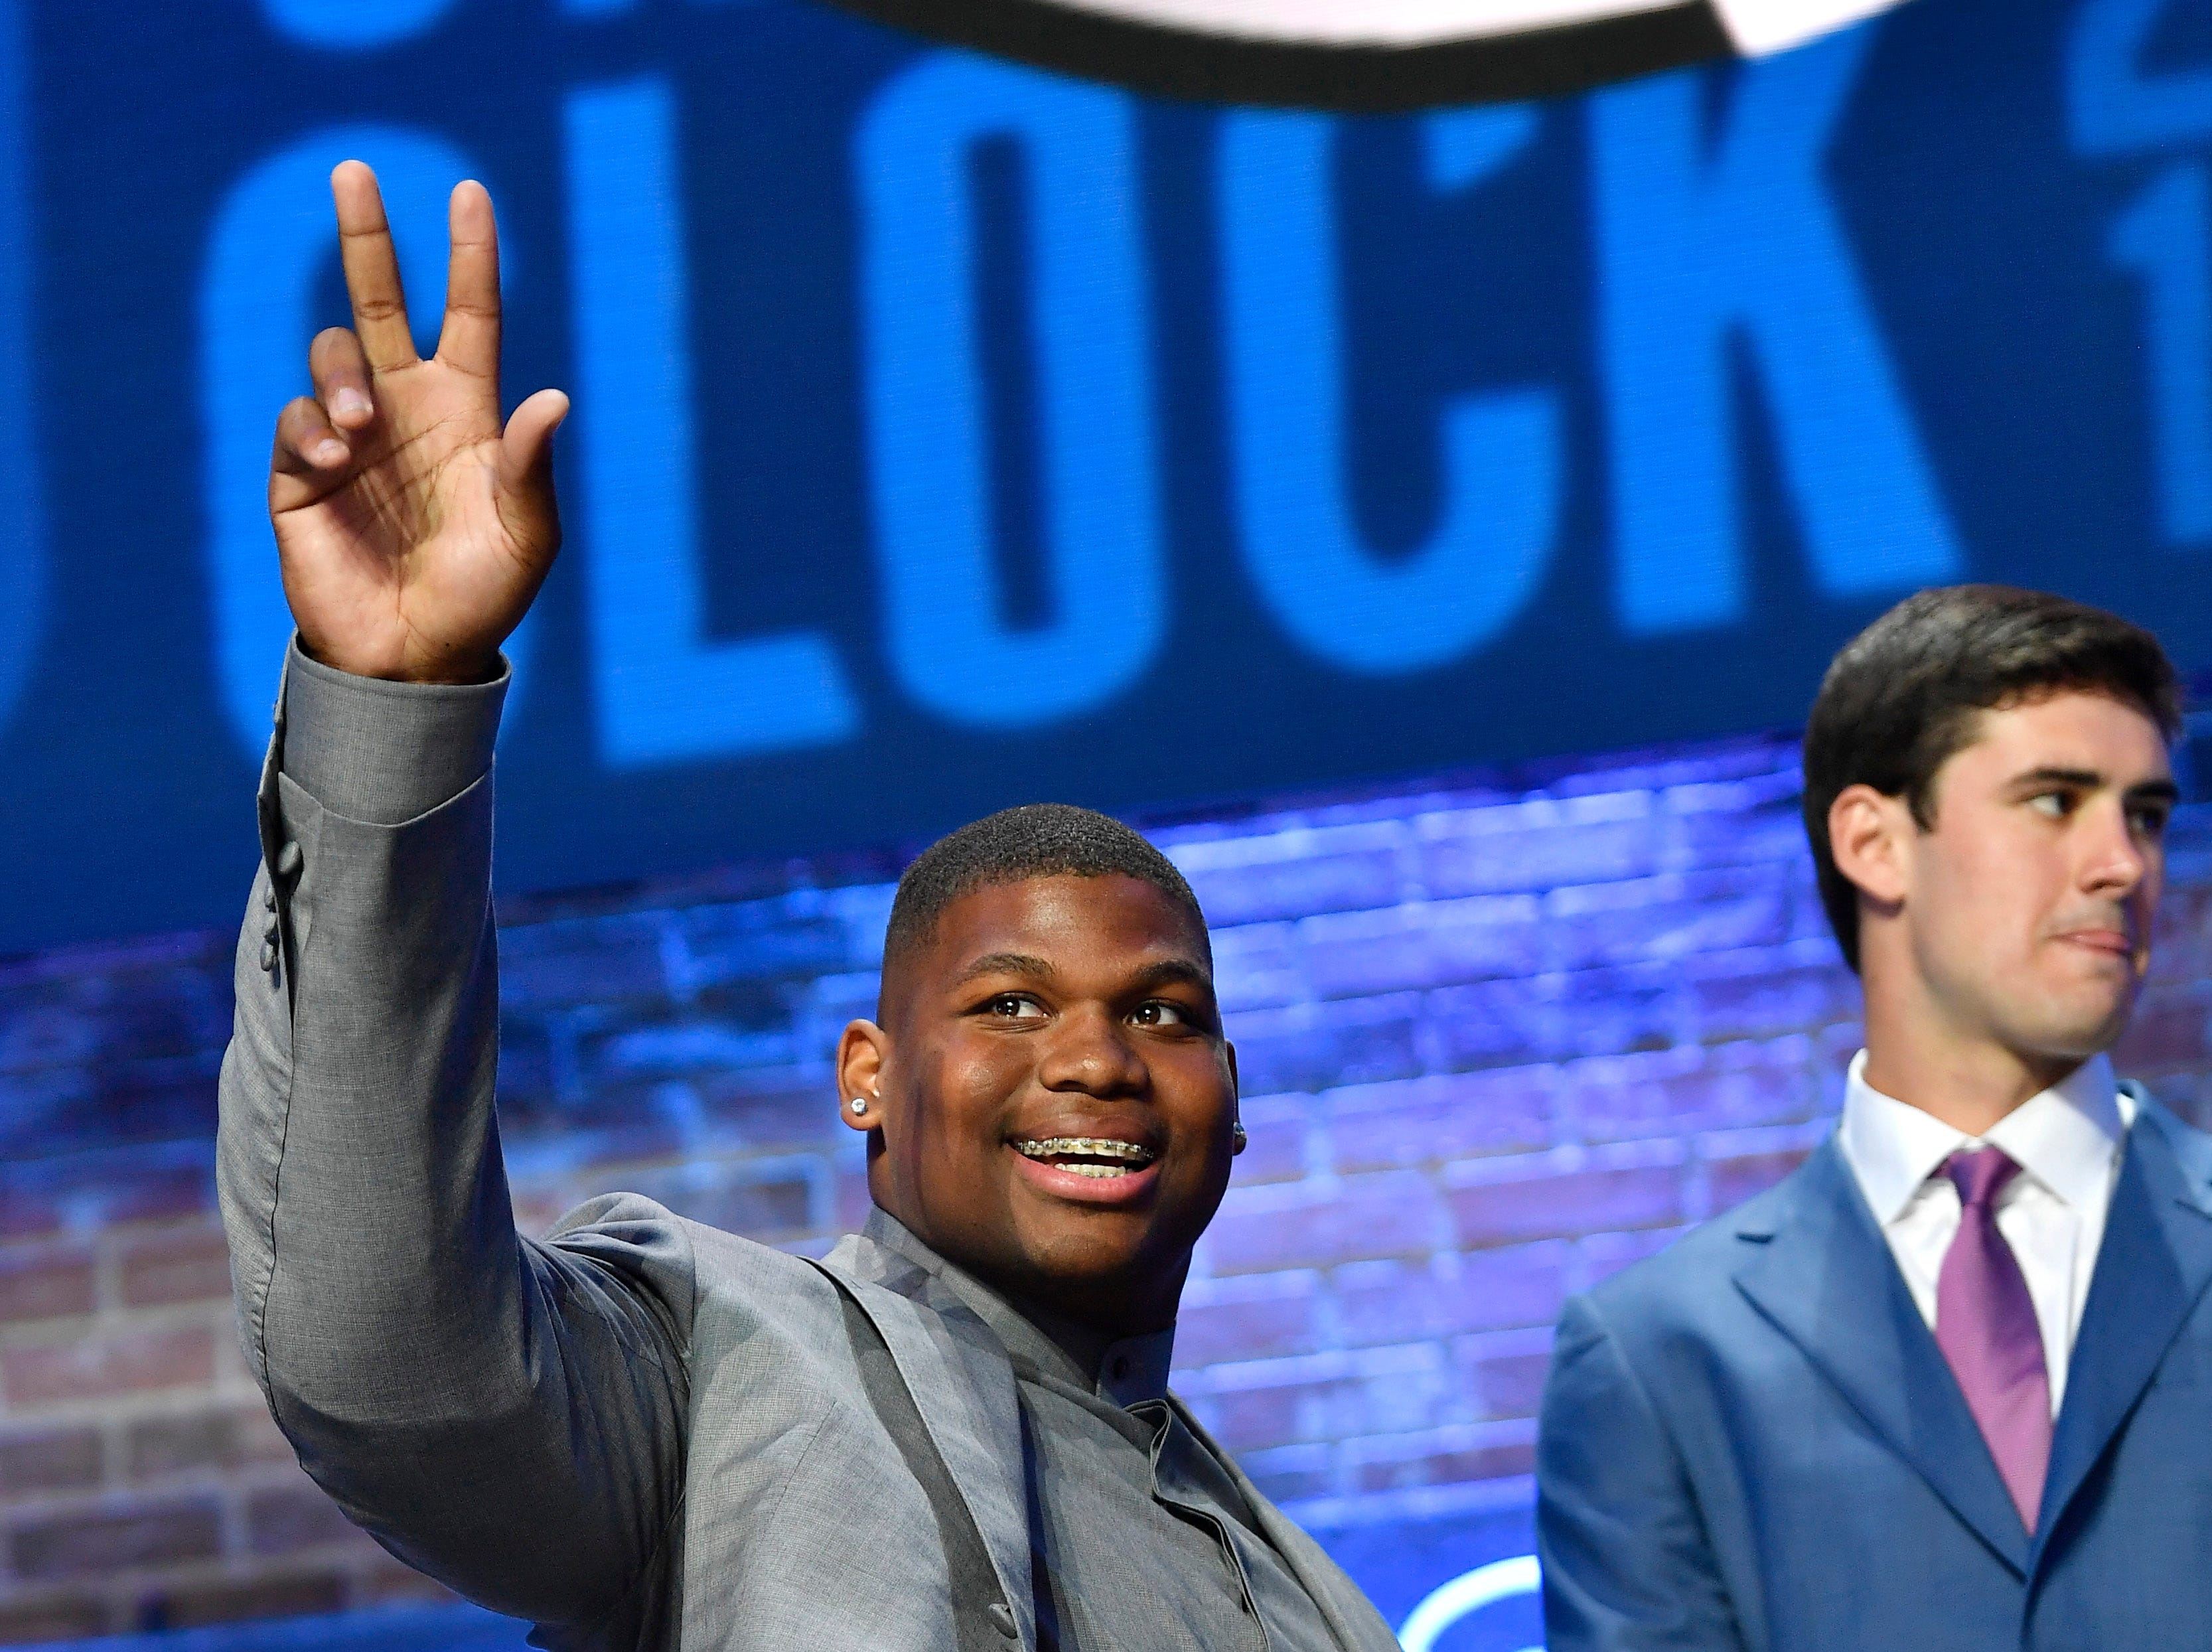 Quinnen Williams of Alabama waves to the crowd as he comes on stage for the first round of the NFL Draft Thursday, April 25, 2019, in Nashville, Tenn.